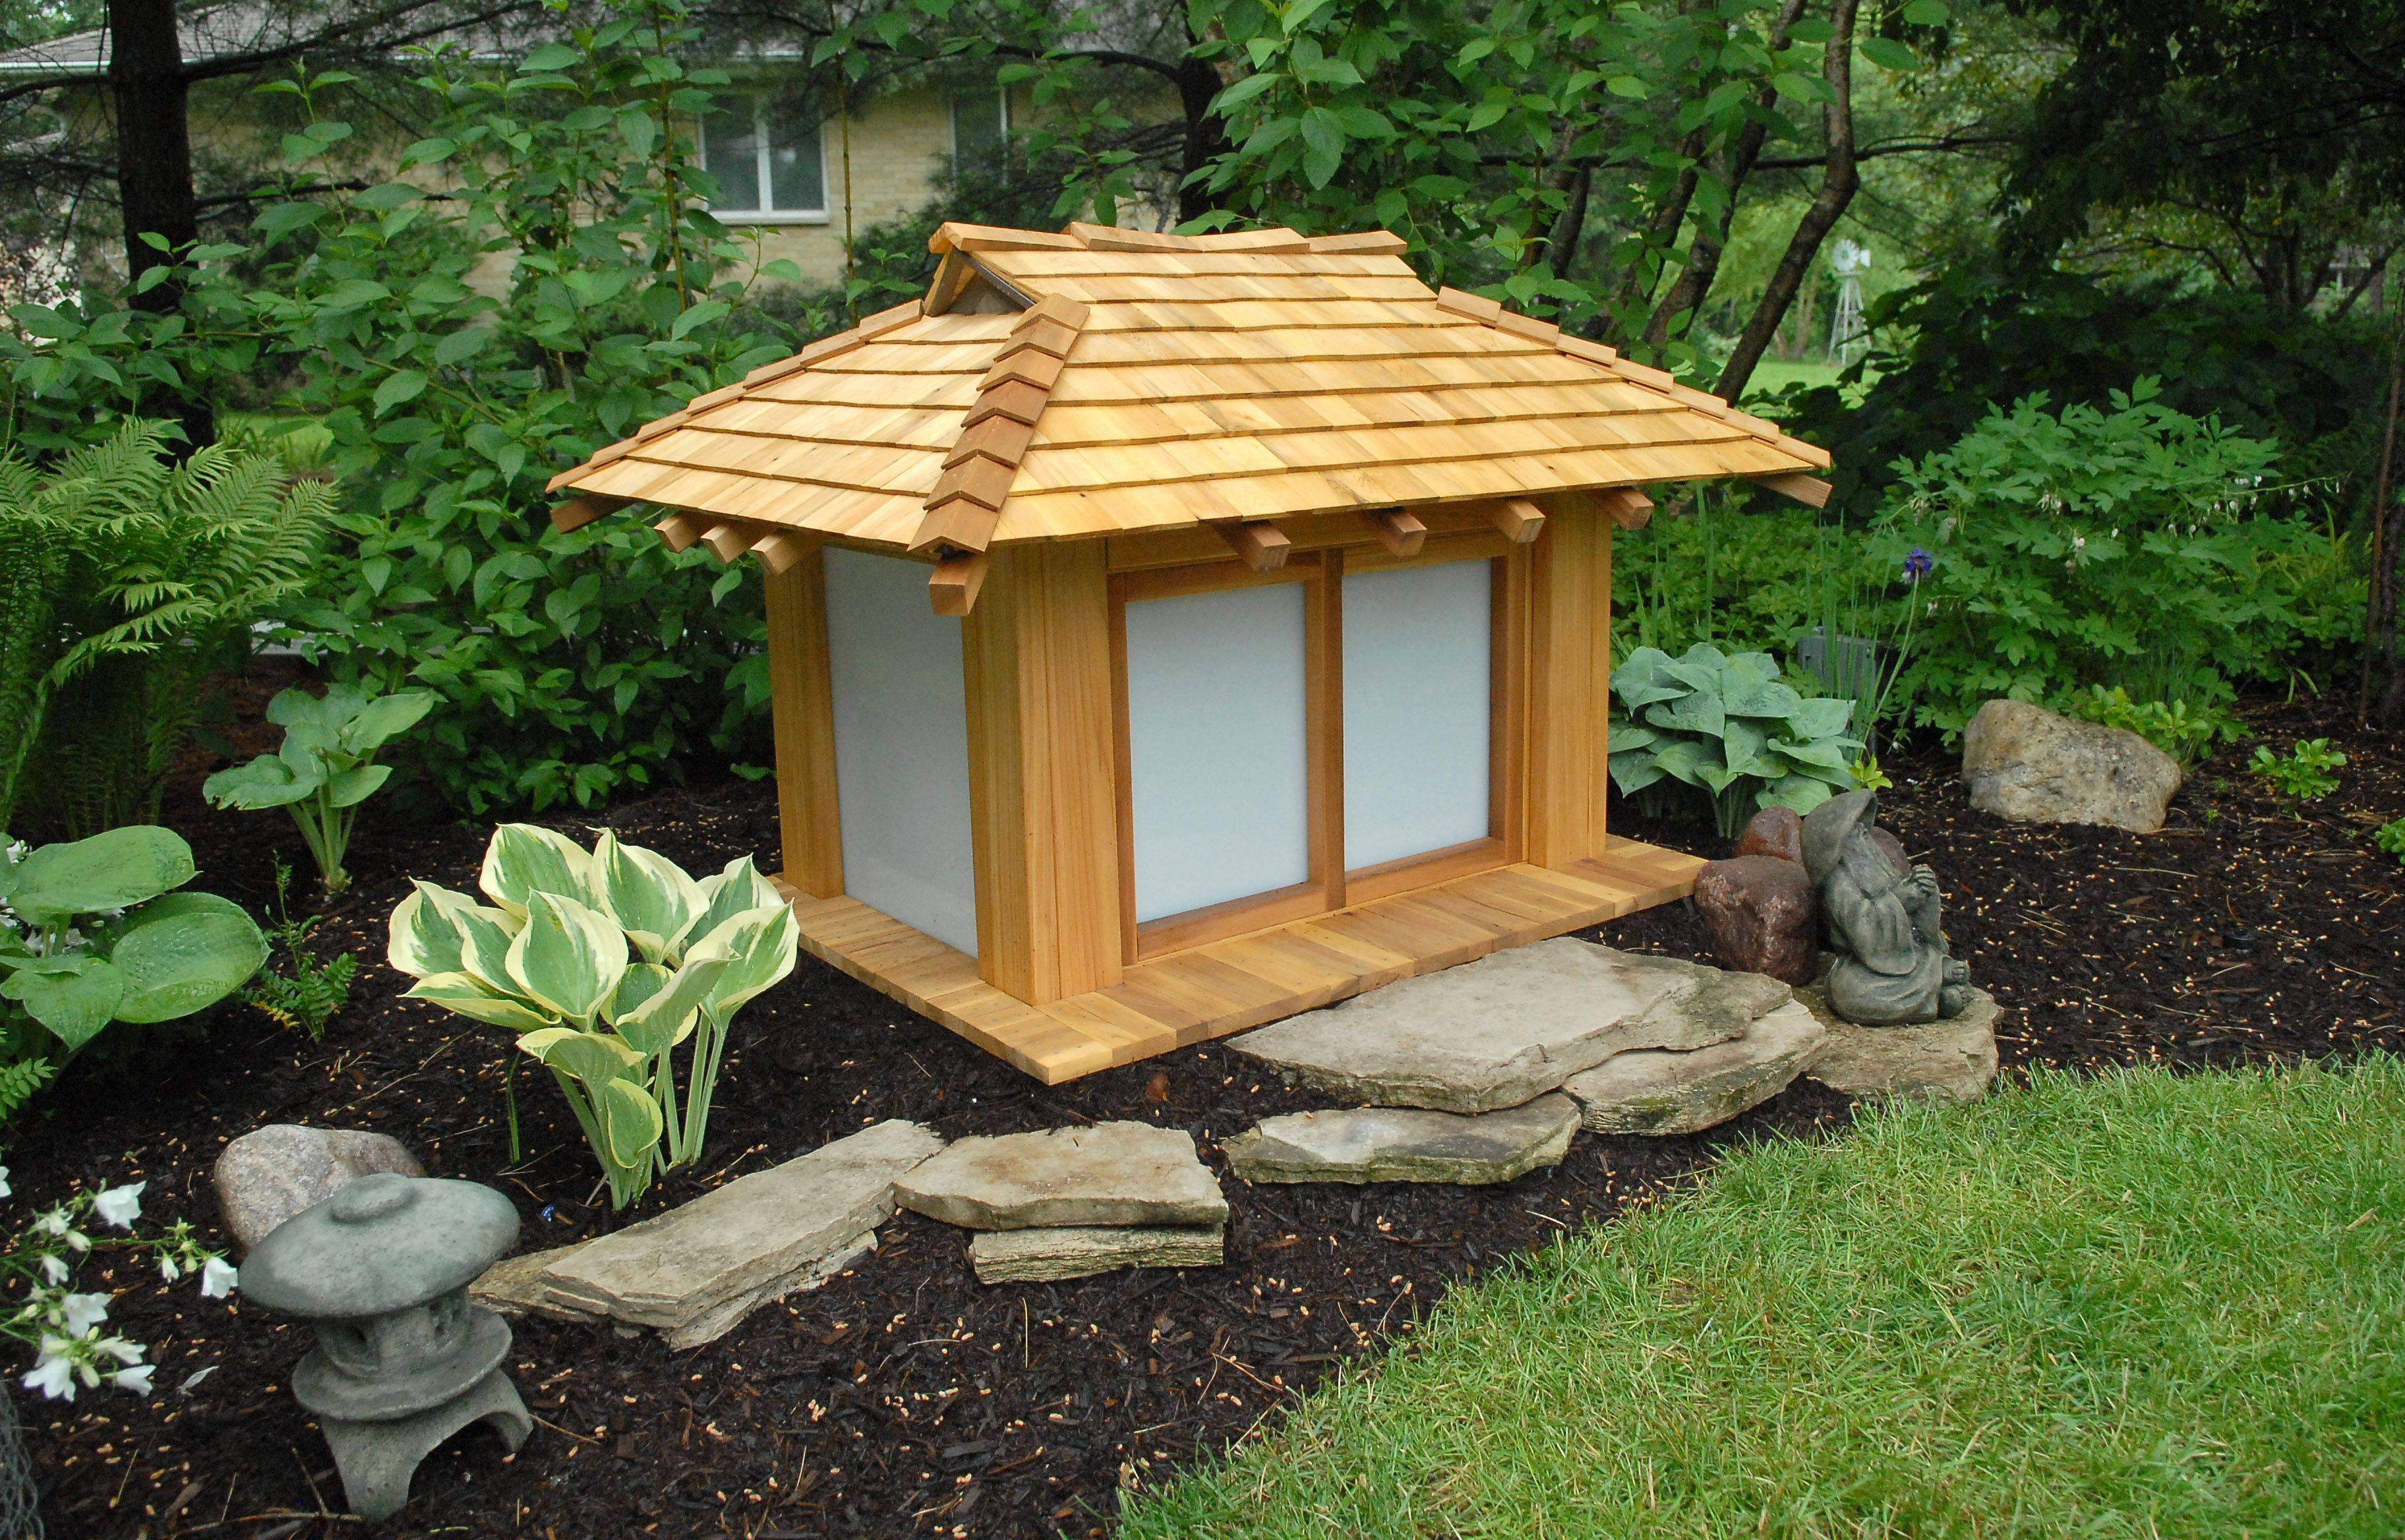 Byron Ambrose made this scale model teahouse for his garden near Batavia.